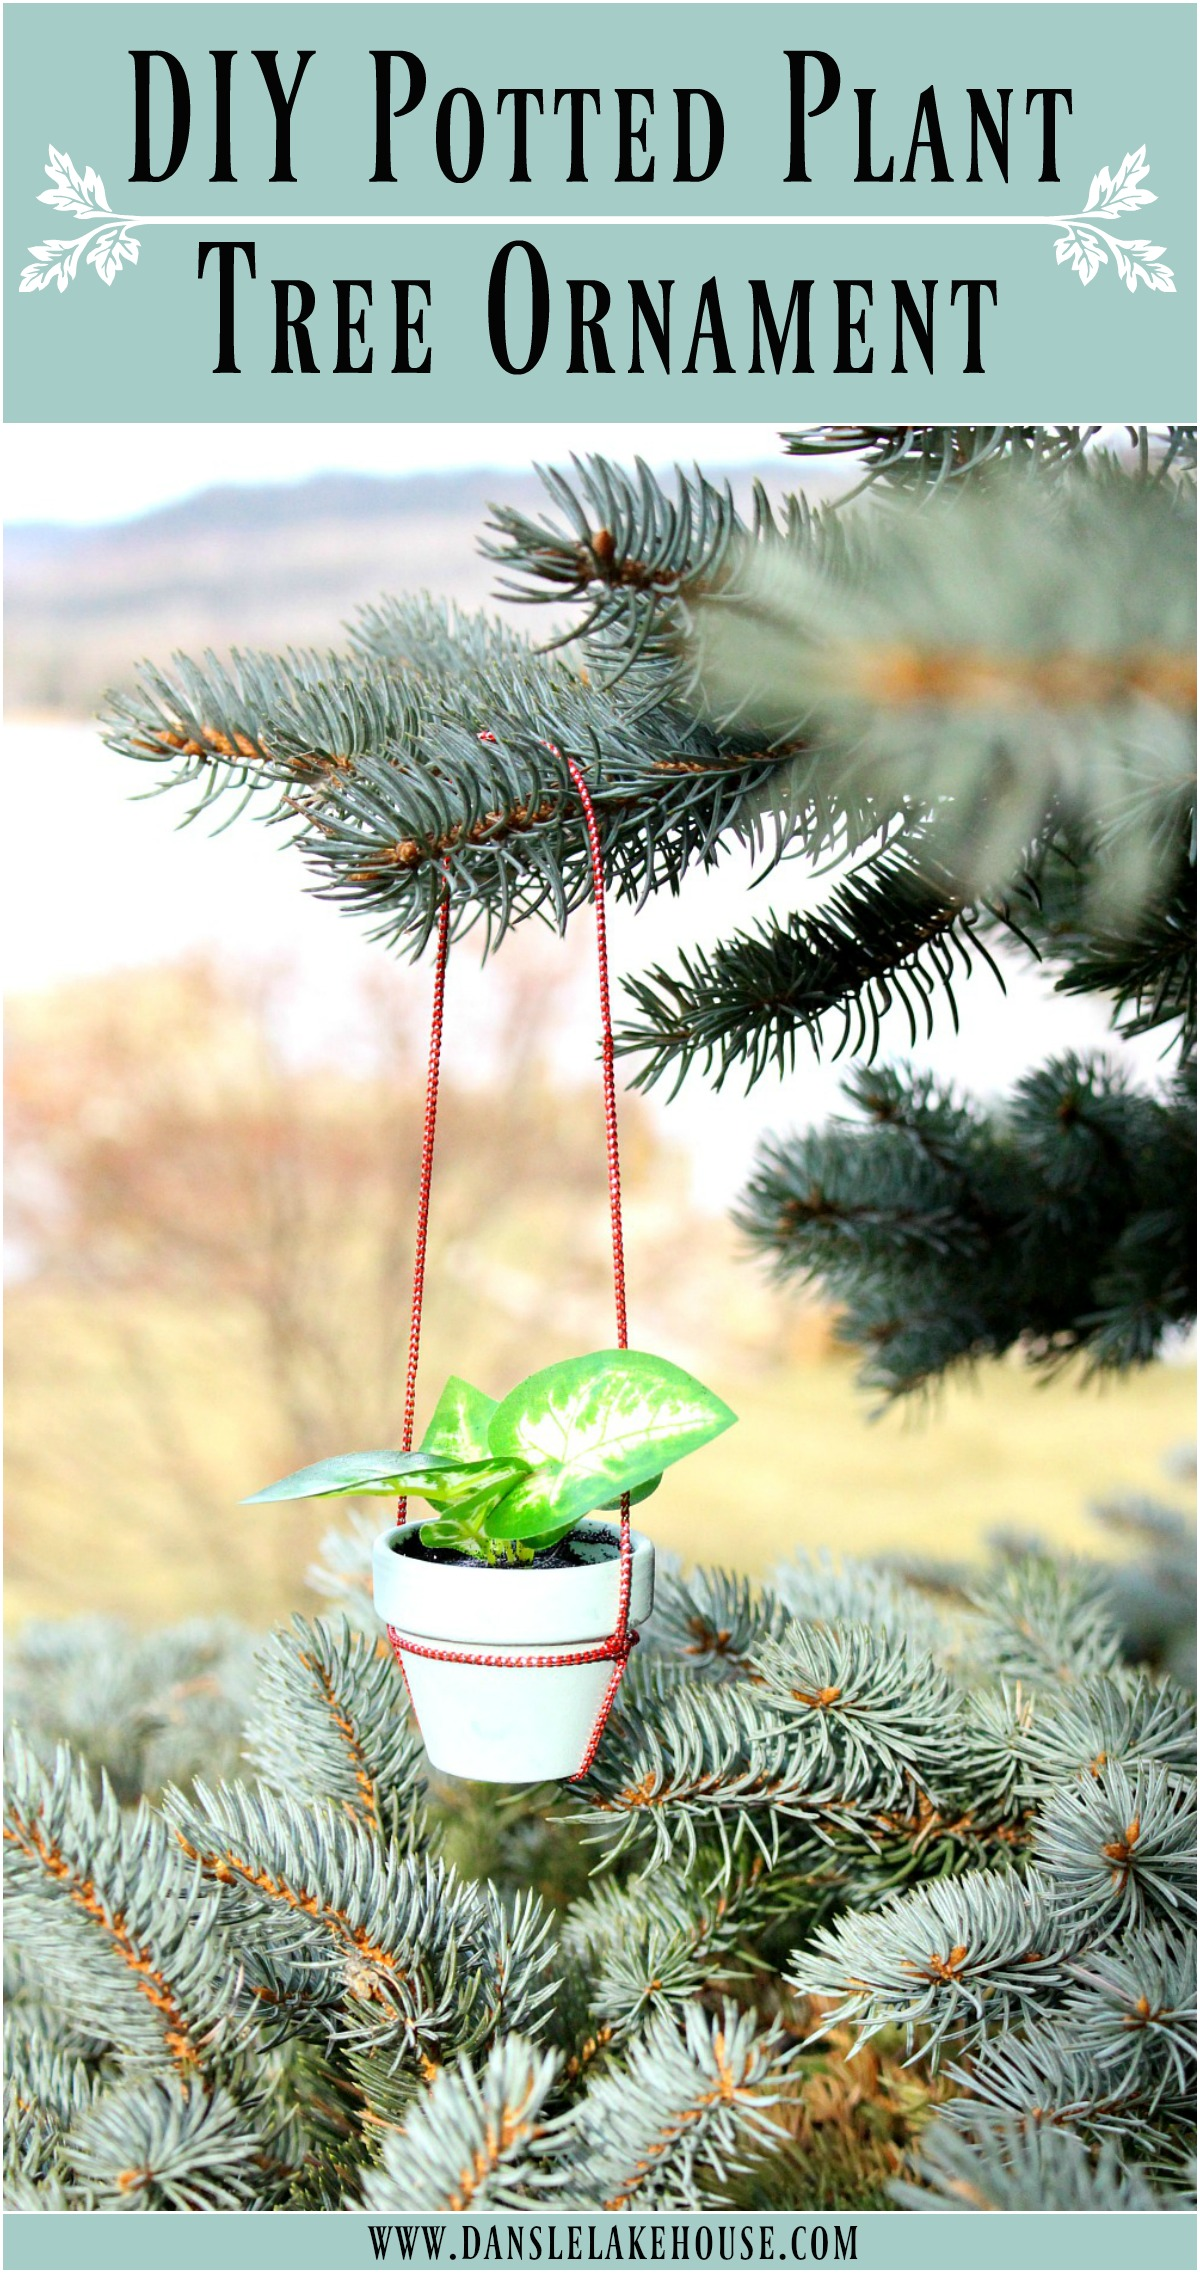 DIY Potted Plant Christmas Tree Ornament - Anthro Knock Off